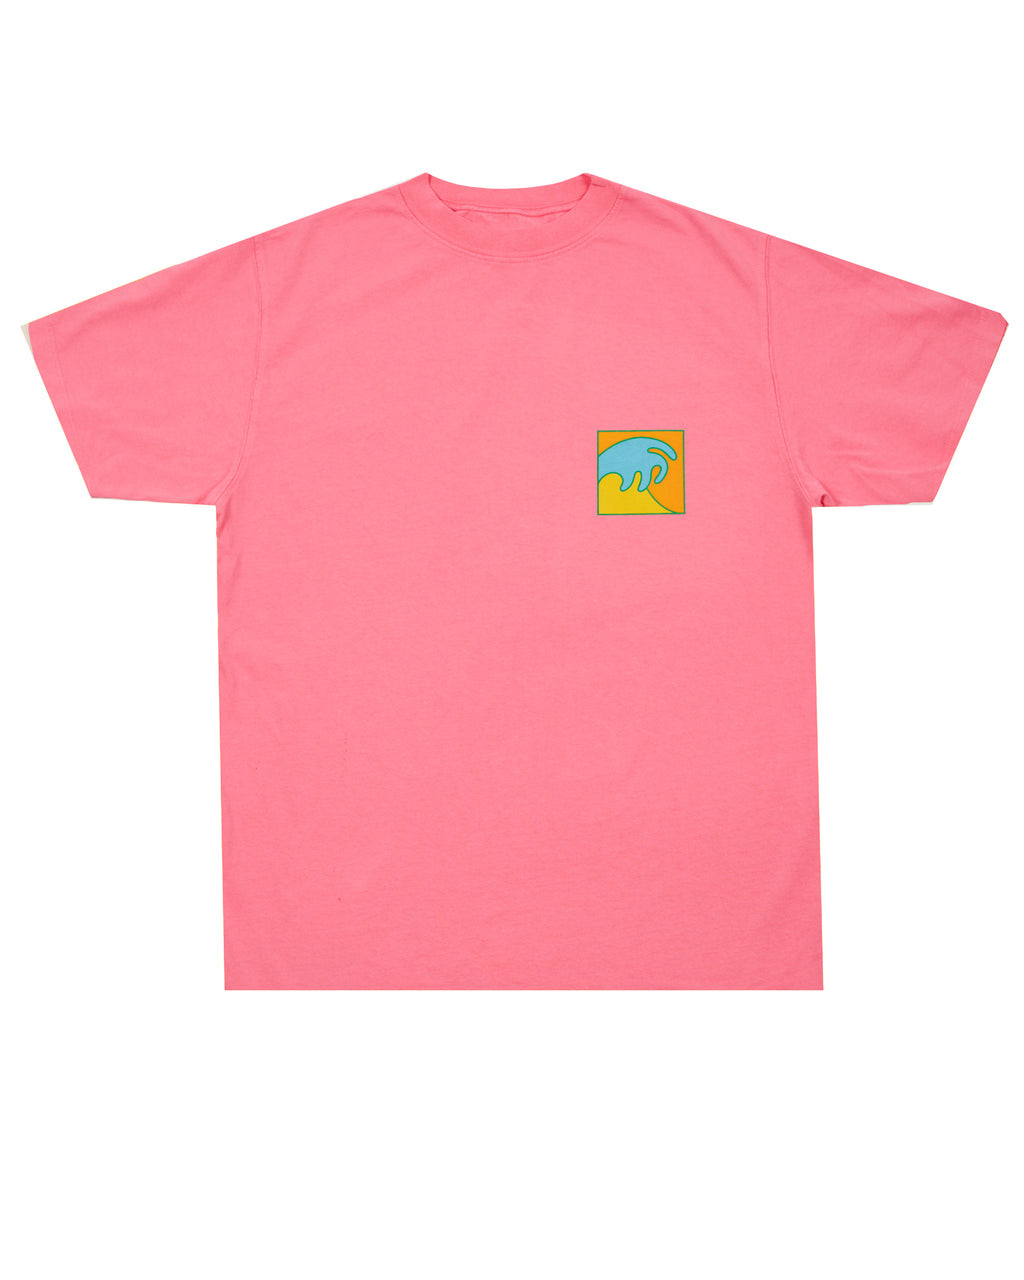 PINK T-SHIRT WITH MULTICOLOR WAVE